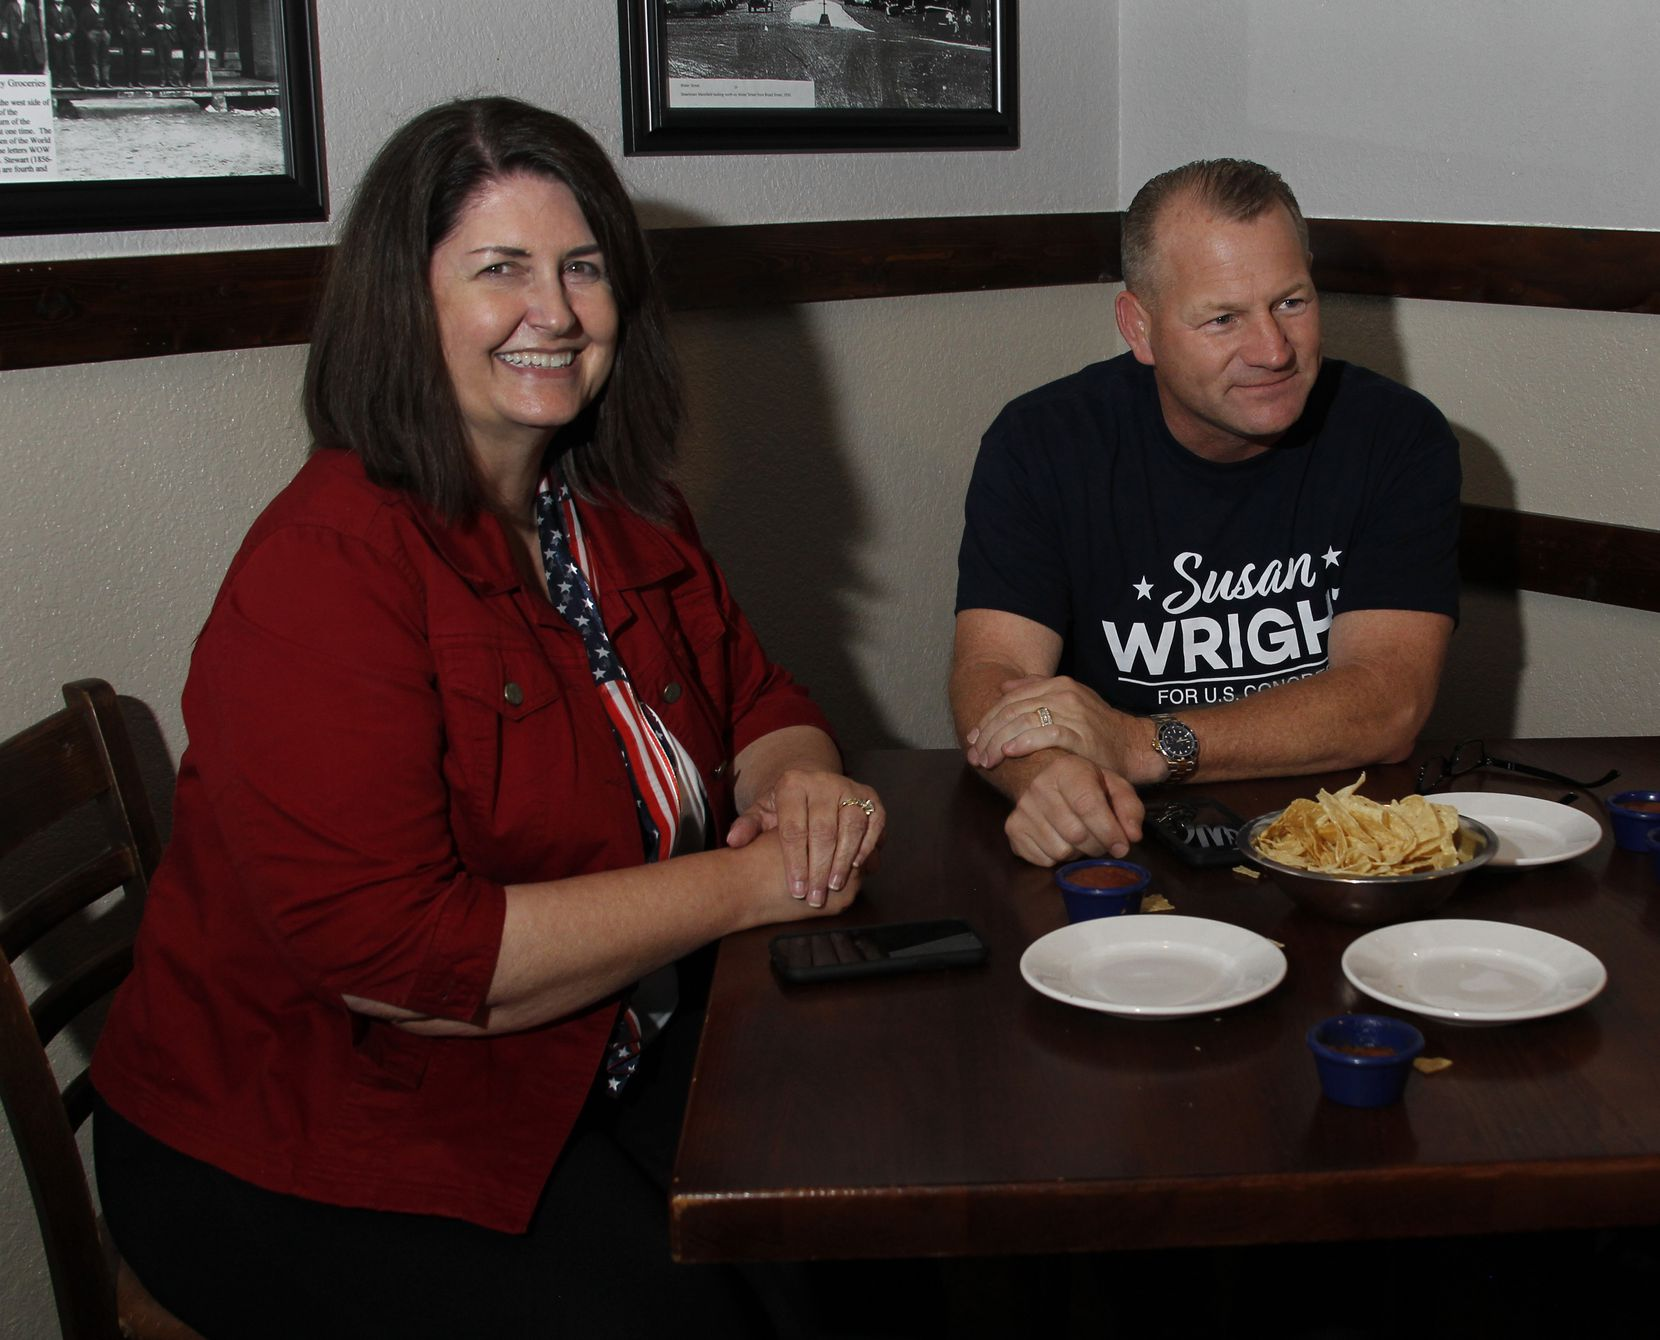 Susan Wright, candidate for Congress Distrct 6, visits with Congressman Troy Nehls (22nd District) during her election night party. Susan Wright's election night party was held at El Primos in Mansfield on May 1, 2021. (Steve Hamm/ Special Contributor)